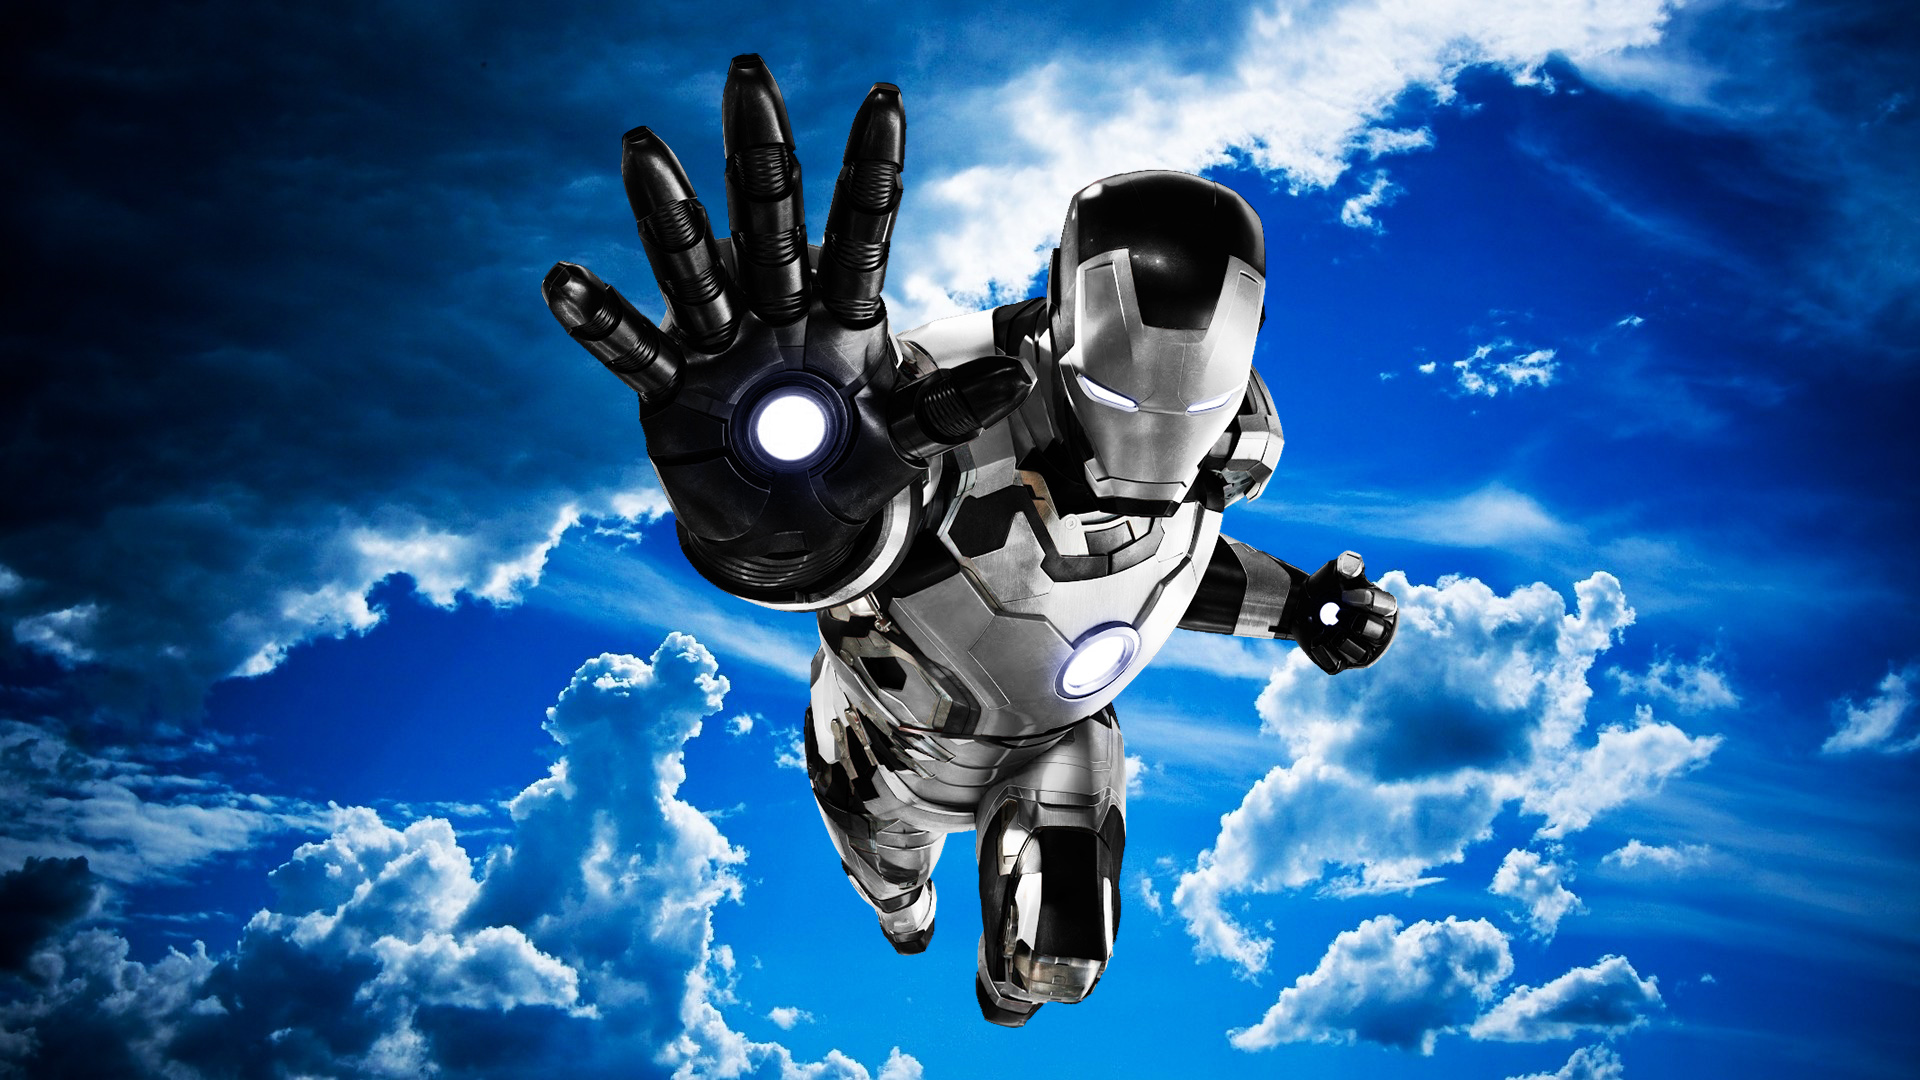 1920x1080 Iron Man Mark 42 Black And White Laptop Full Hd 1080p Hd